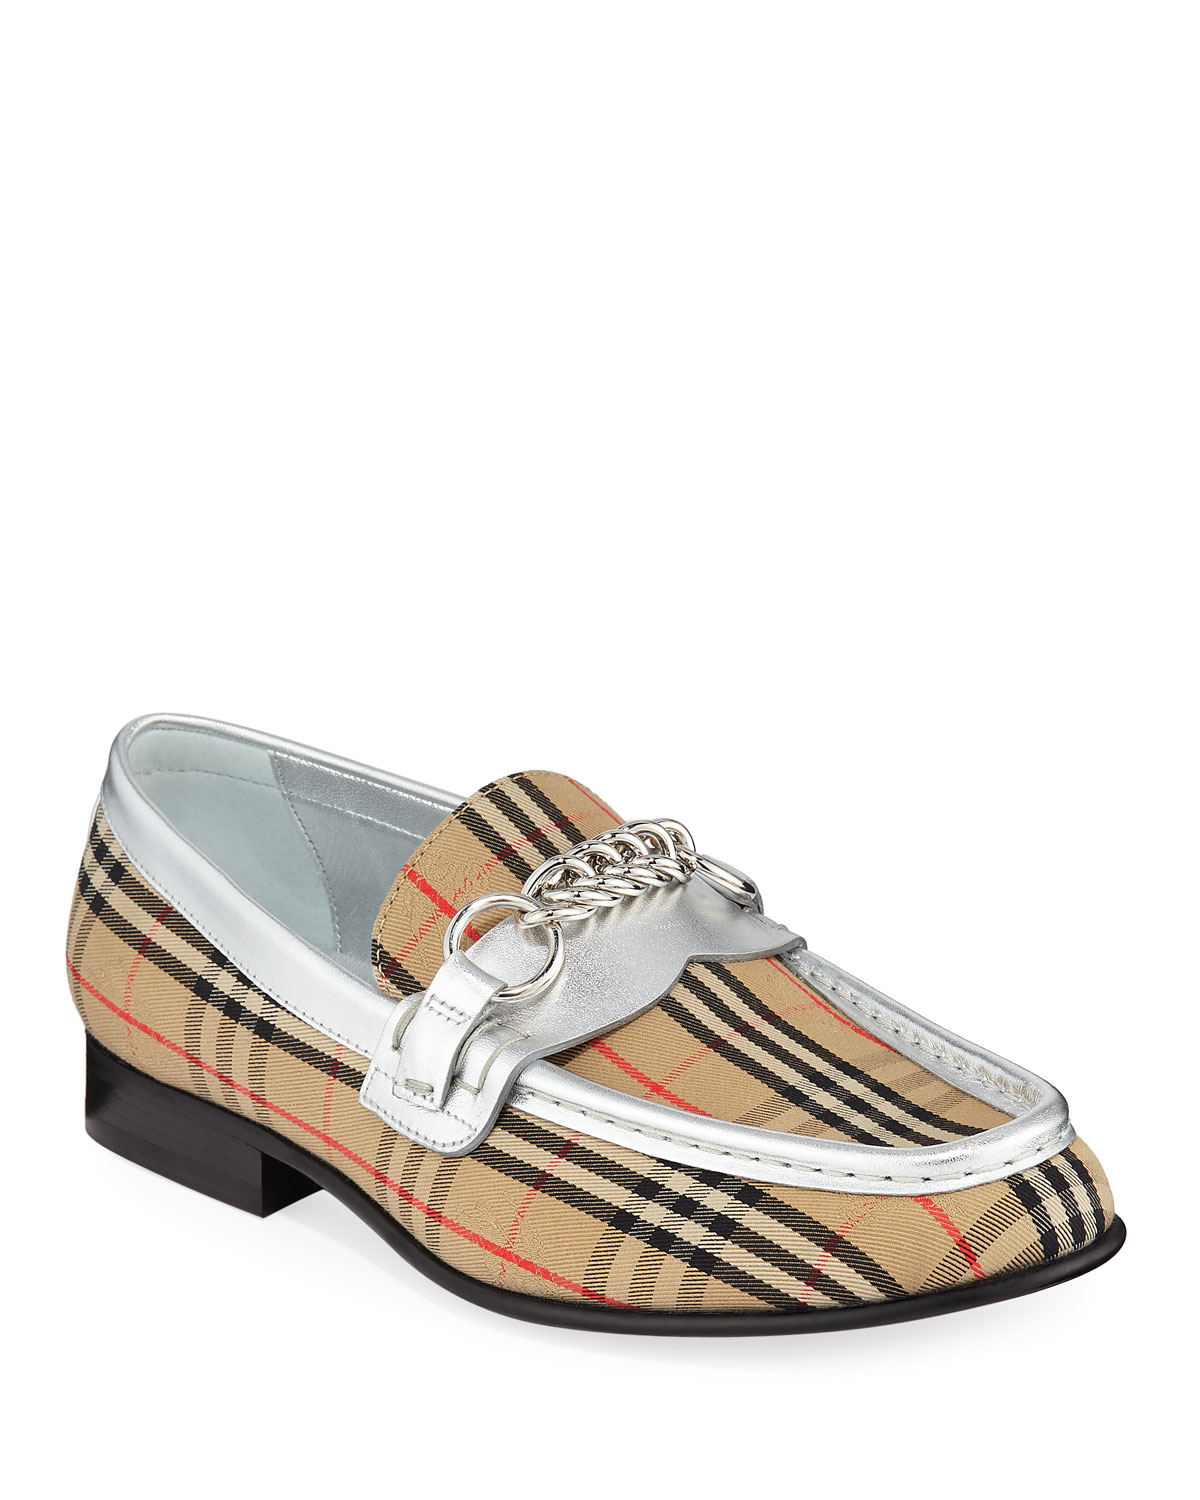 Moorley Chain Check Loafers With Metallic Piping in Silver Grey